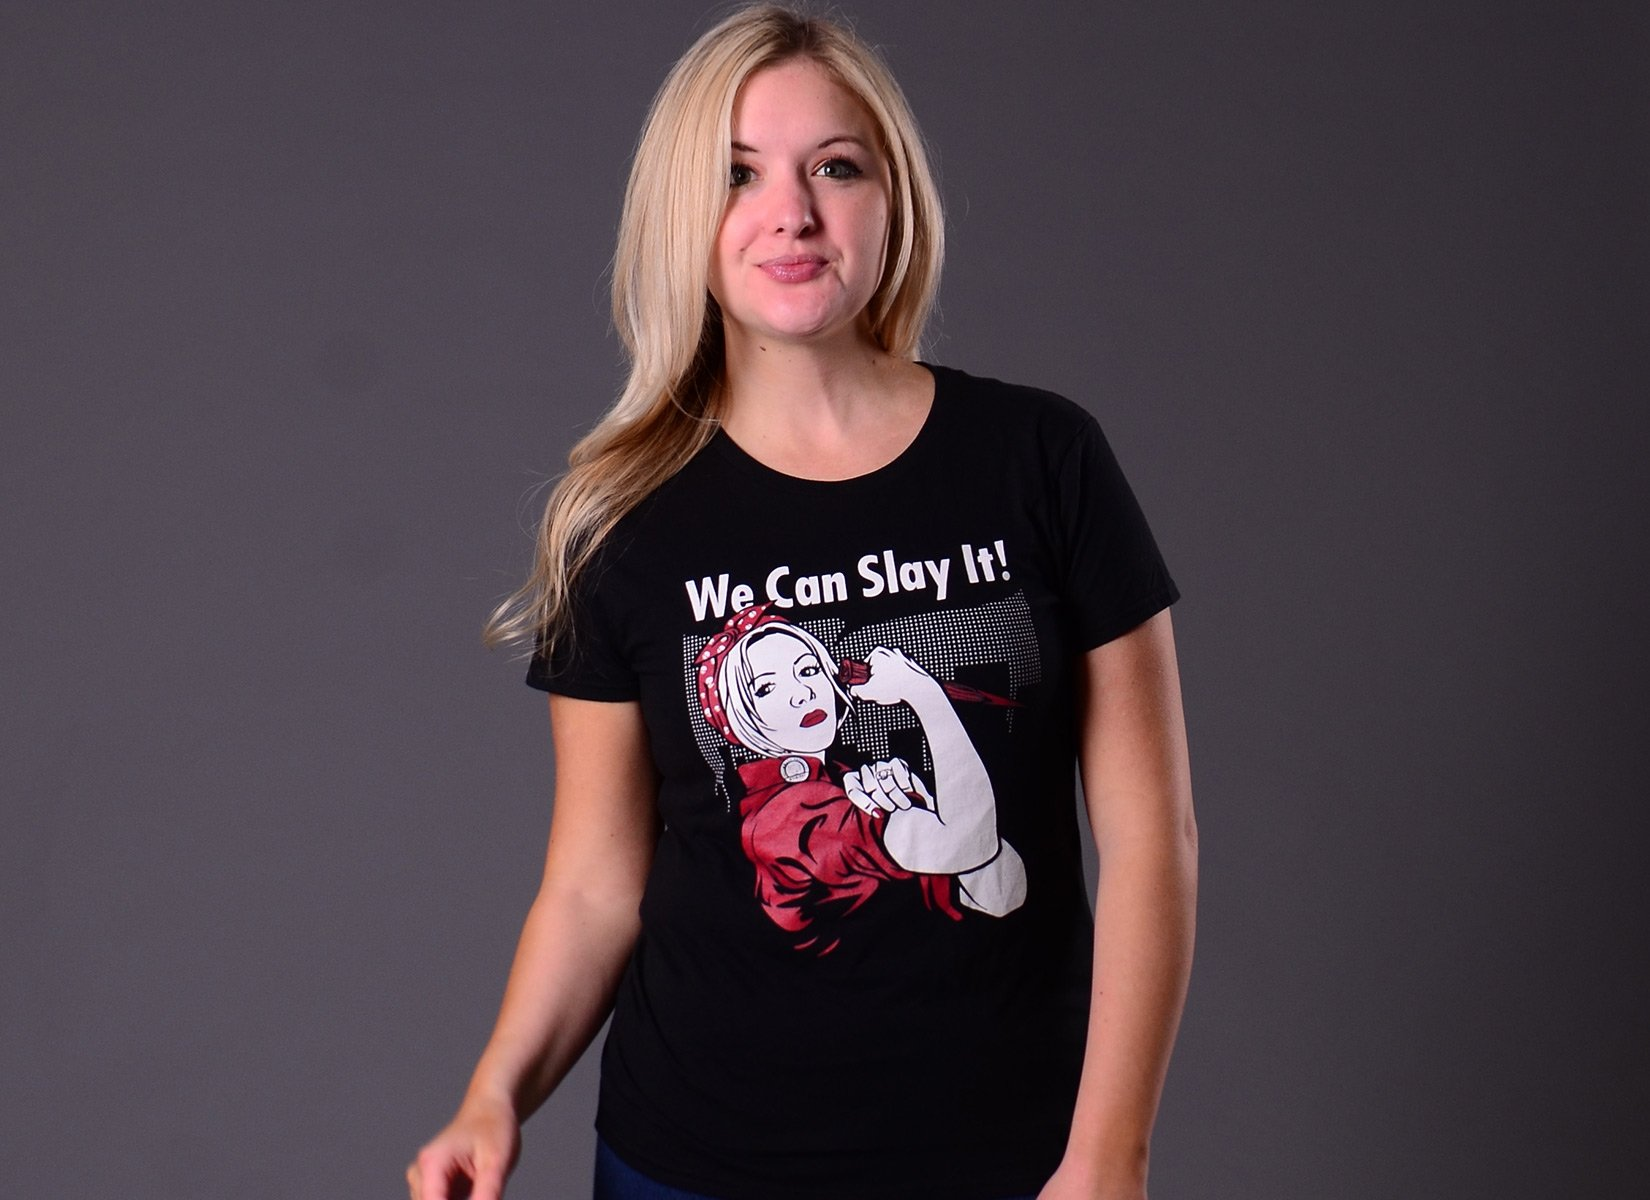 We Can Slay It! on Womens T-Shirt